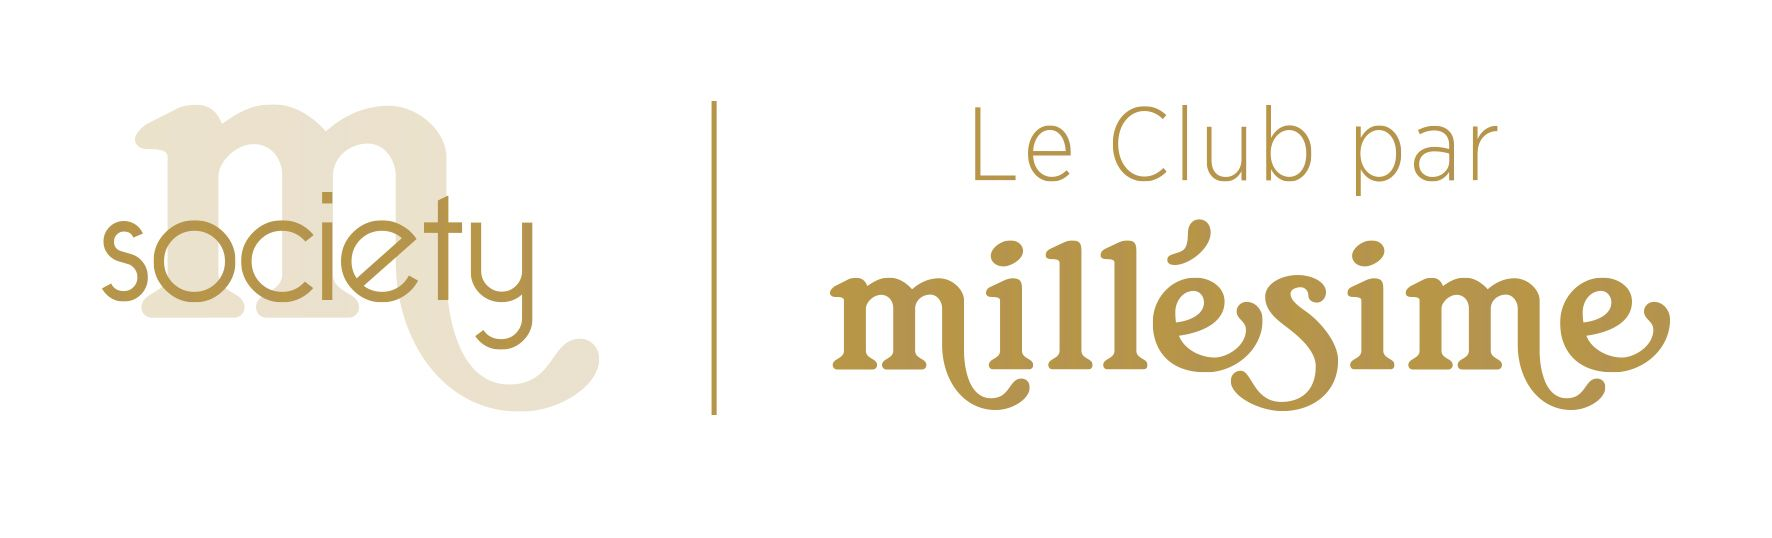 MSOCIETY - le club Millesime